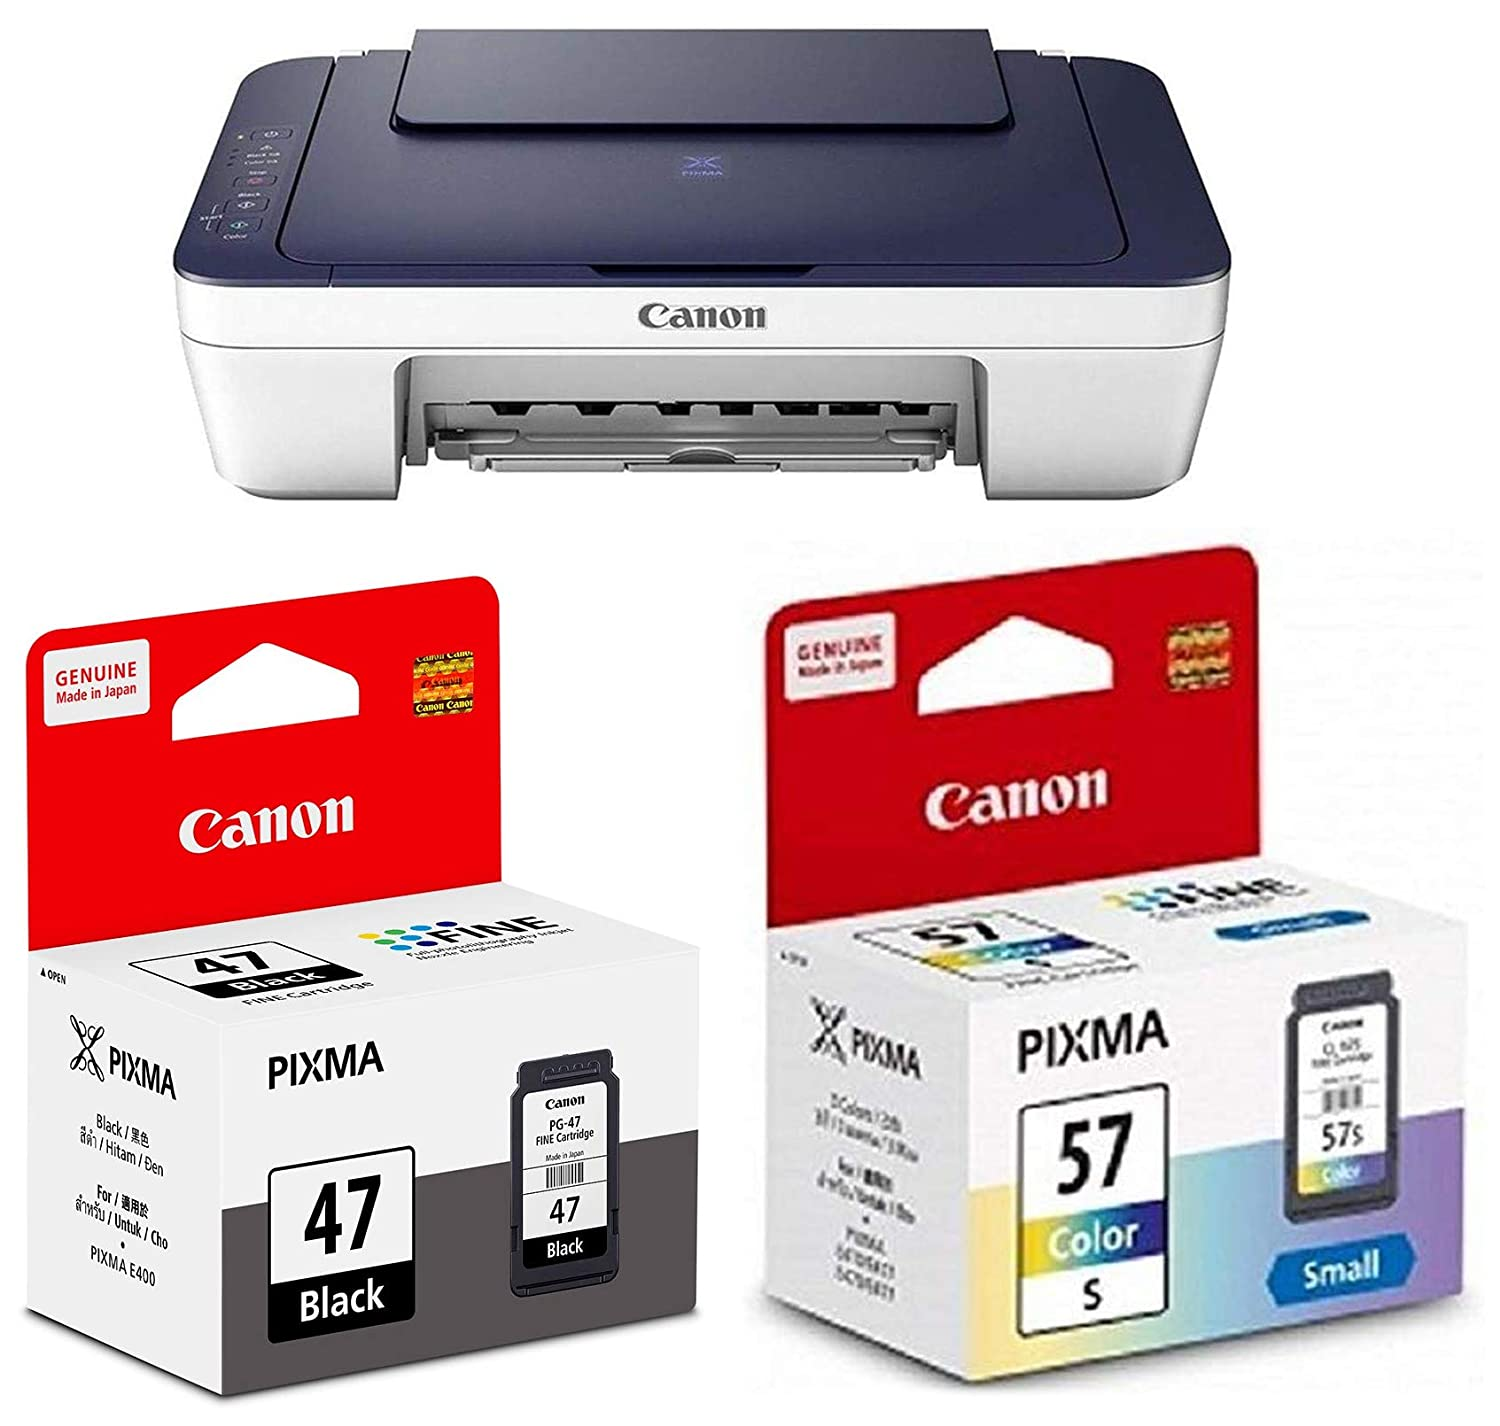 Canon E477 All-in-One Wireless Ink Efficient Colour Printer with PG47 & CL57s Ink Cartridge